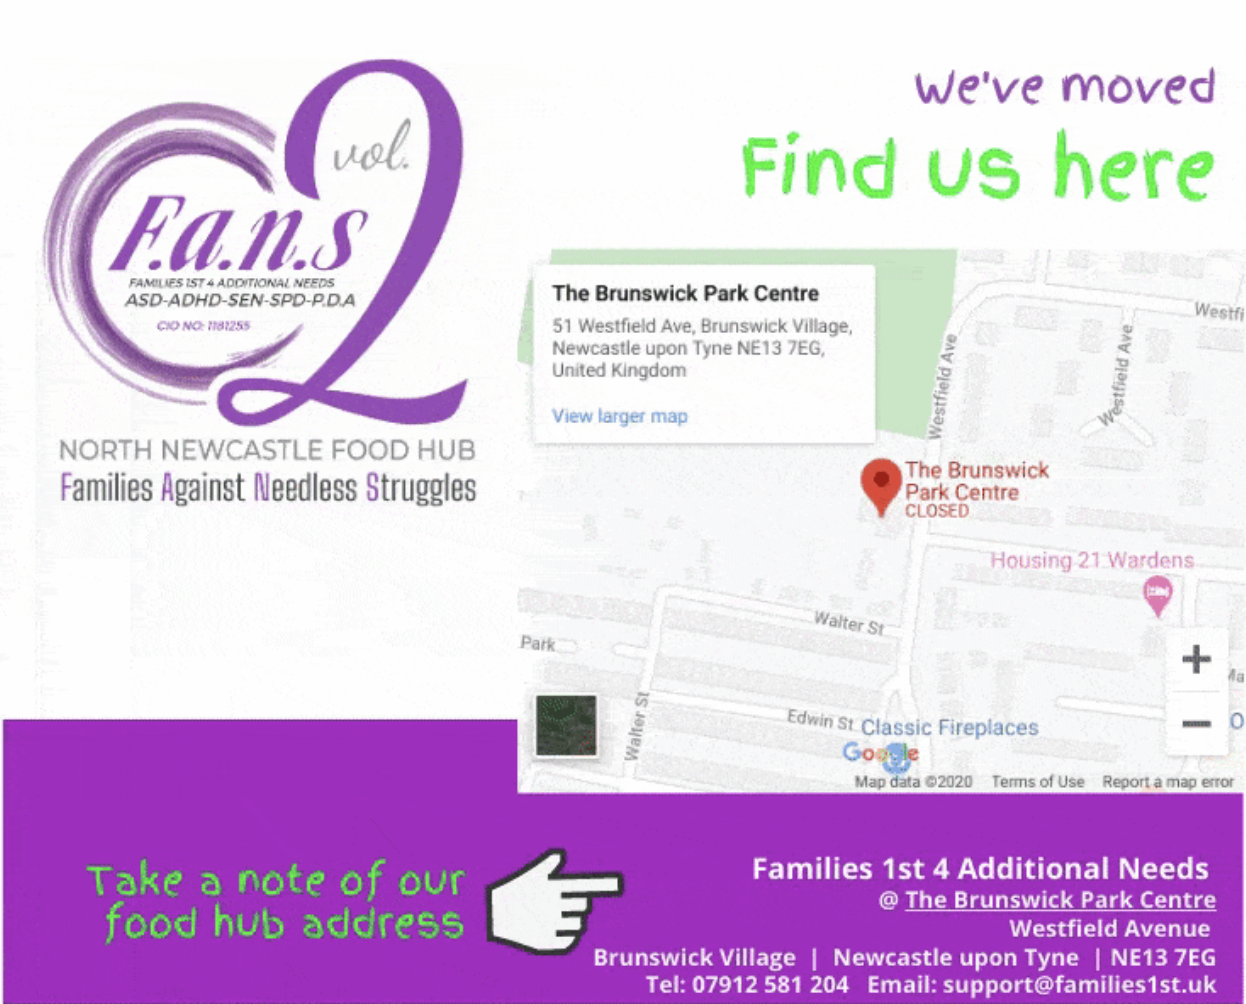 families 1st 4 additional needs location